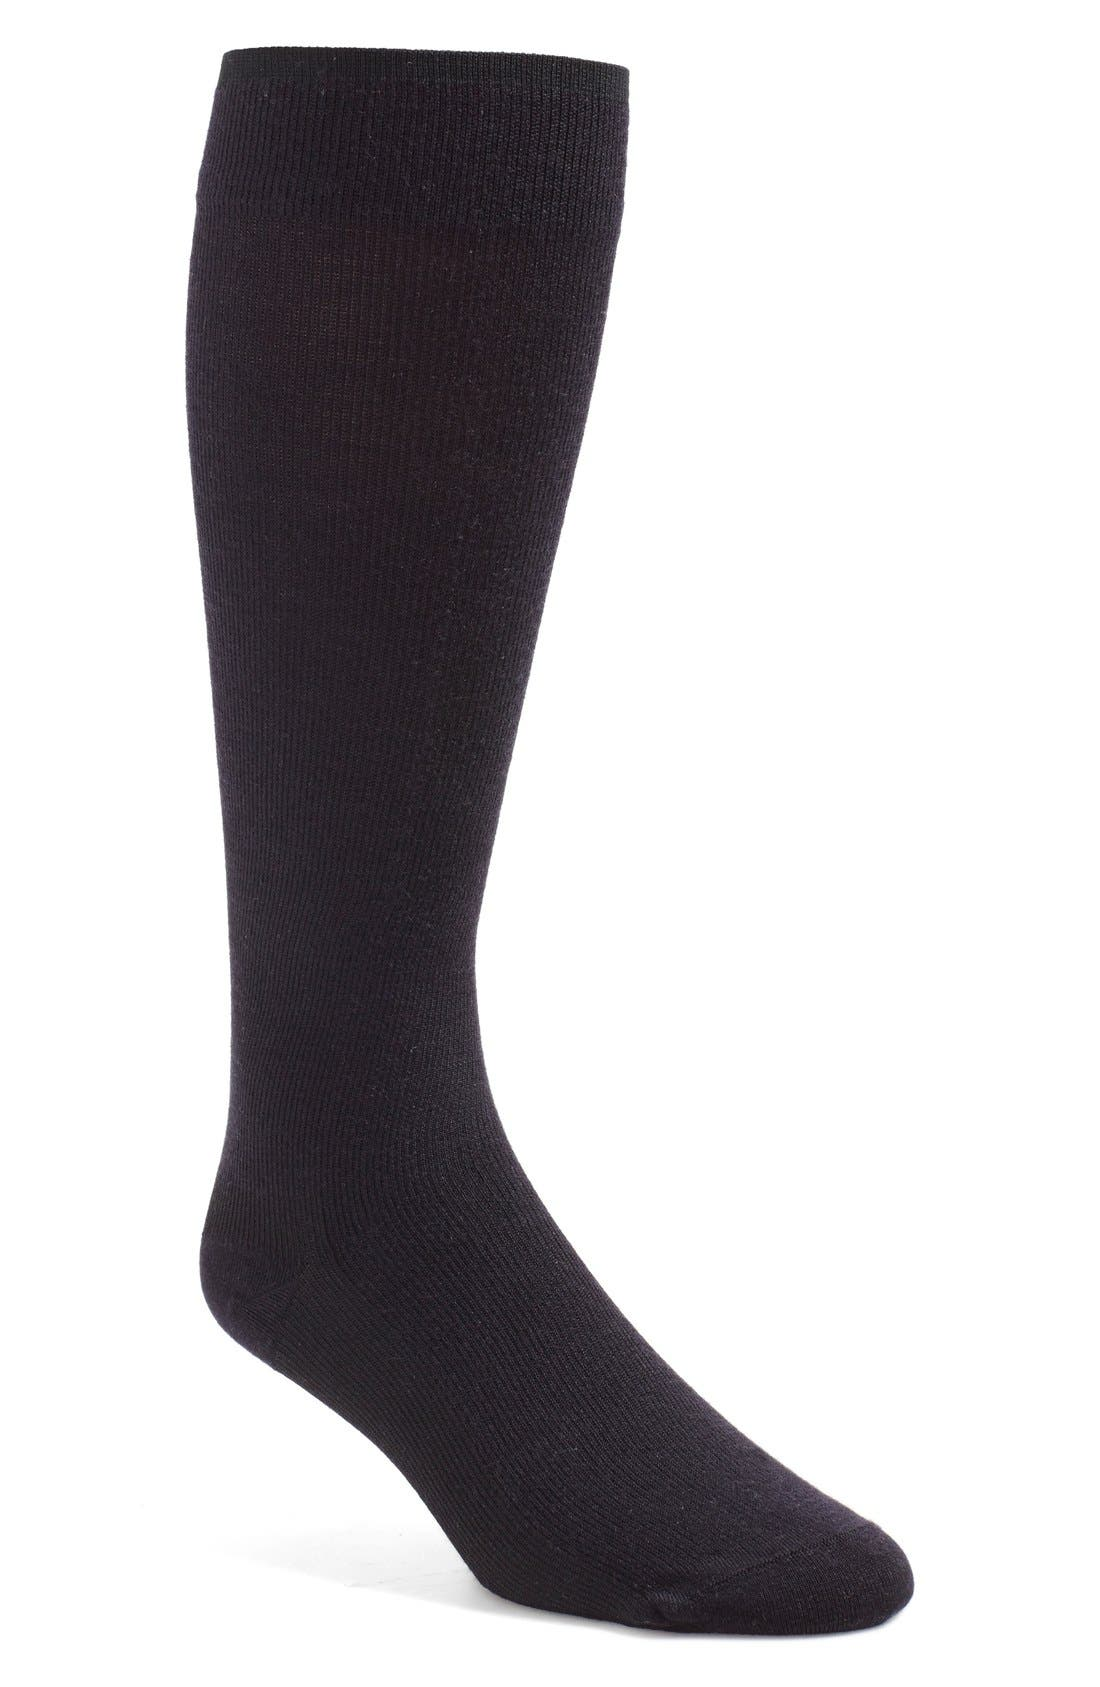 INSIGNIA by SIGVARIS 'Venturist' Over the Calf Socks